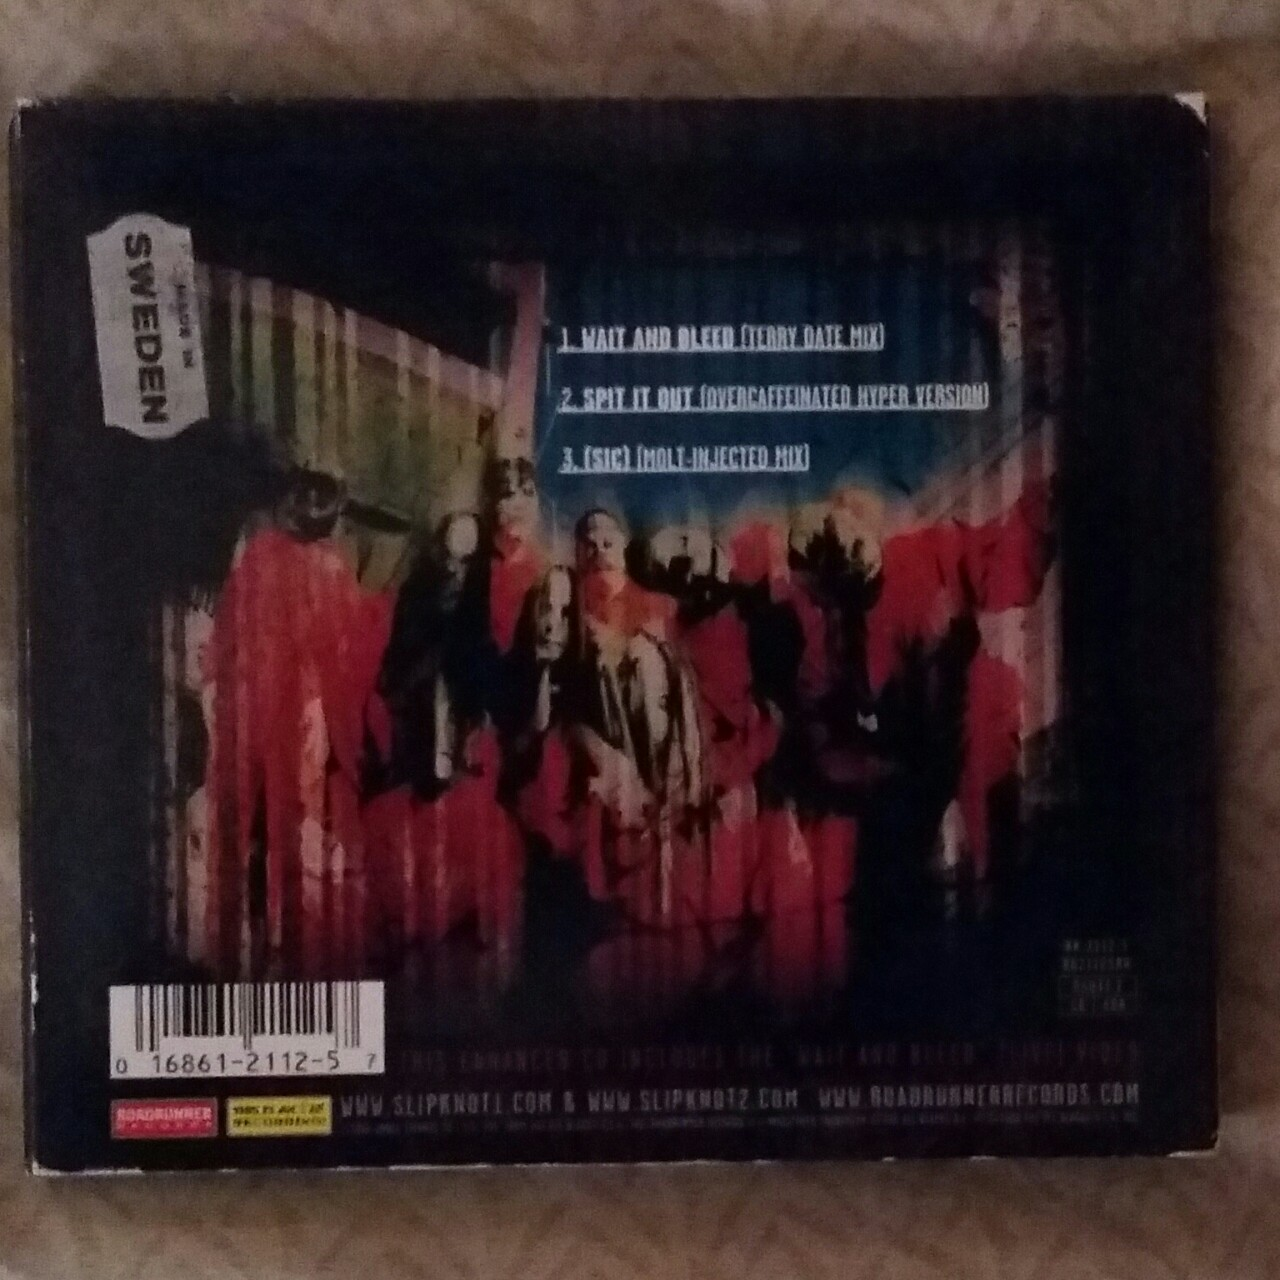 Slipknot Wait And Bleed CD single from '99  Expected    - Depop